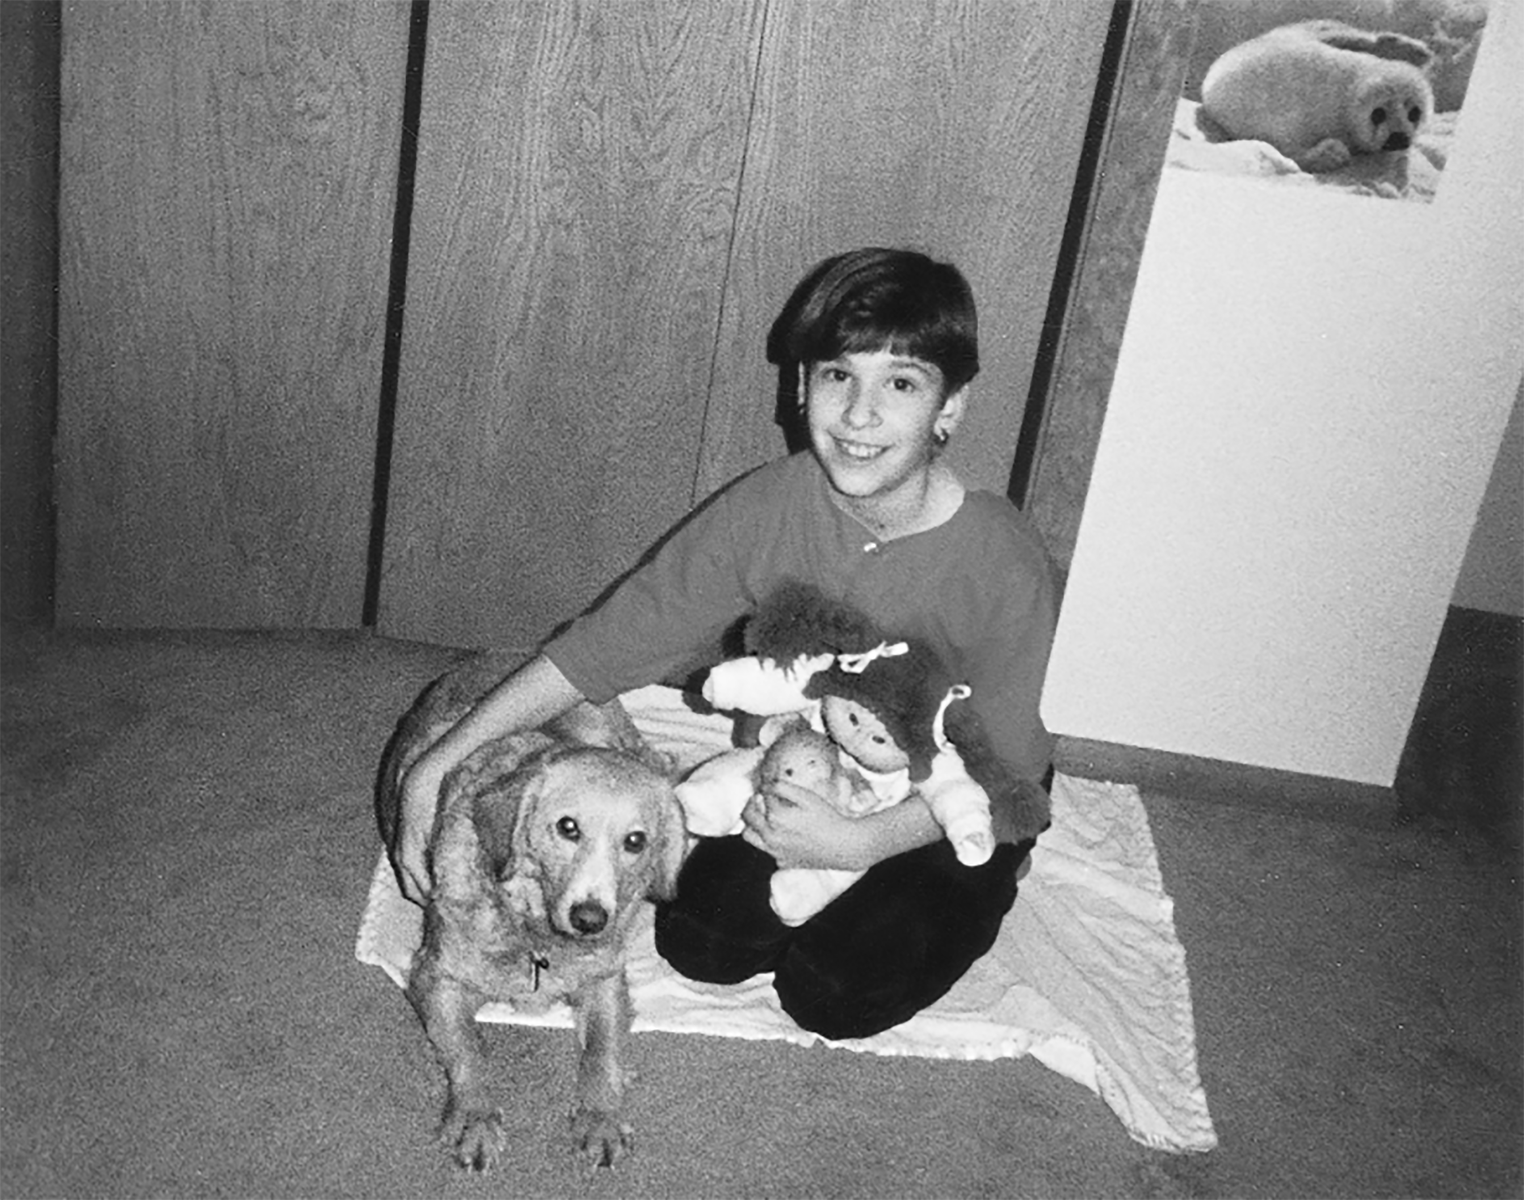 Carrie and dog. (Photo courtesy Carrie Brownstein)